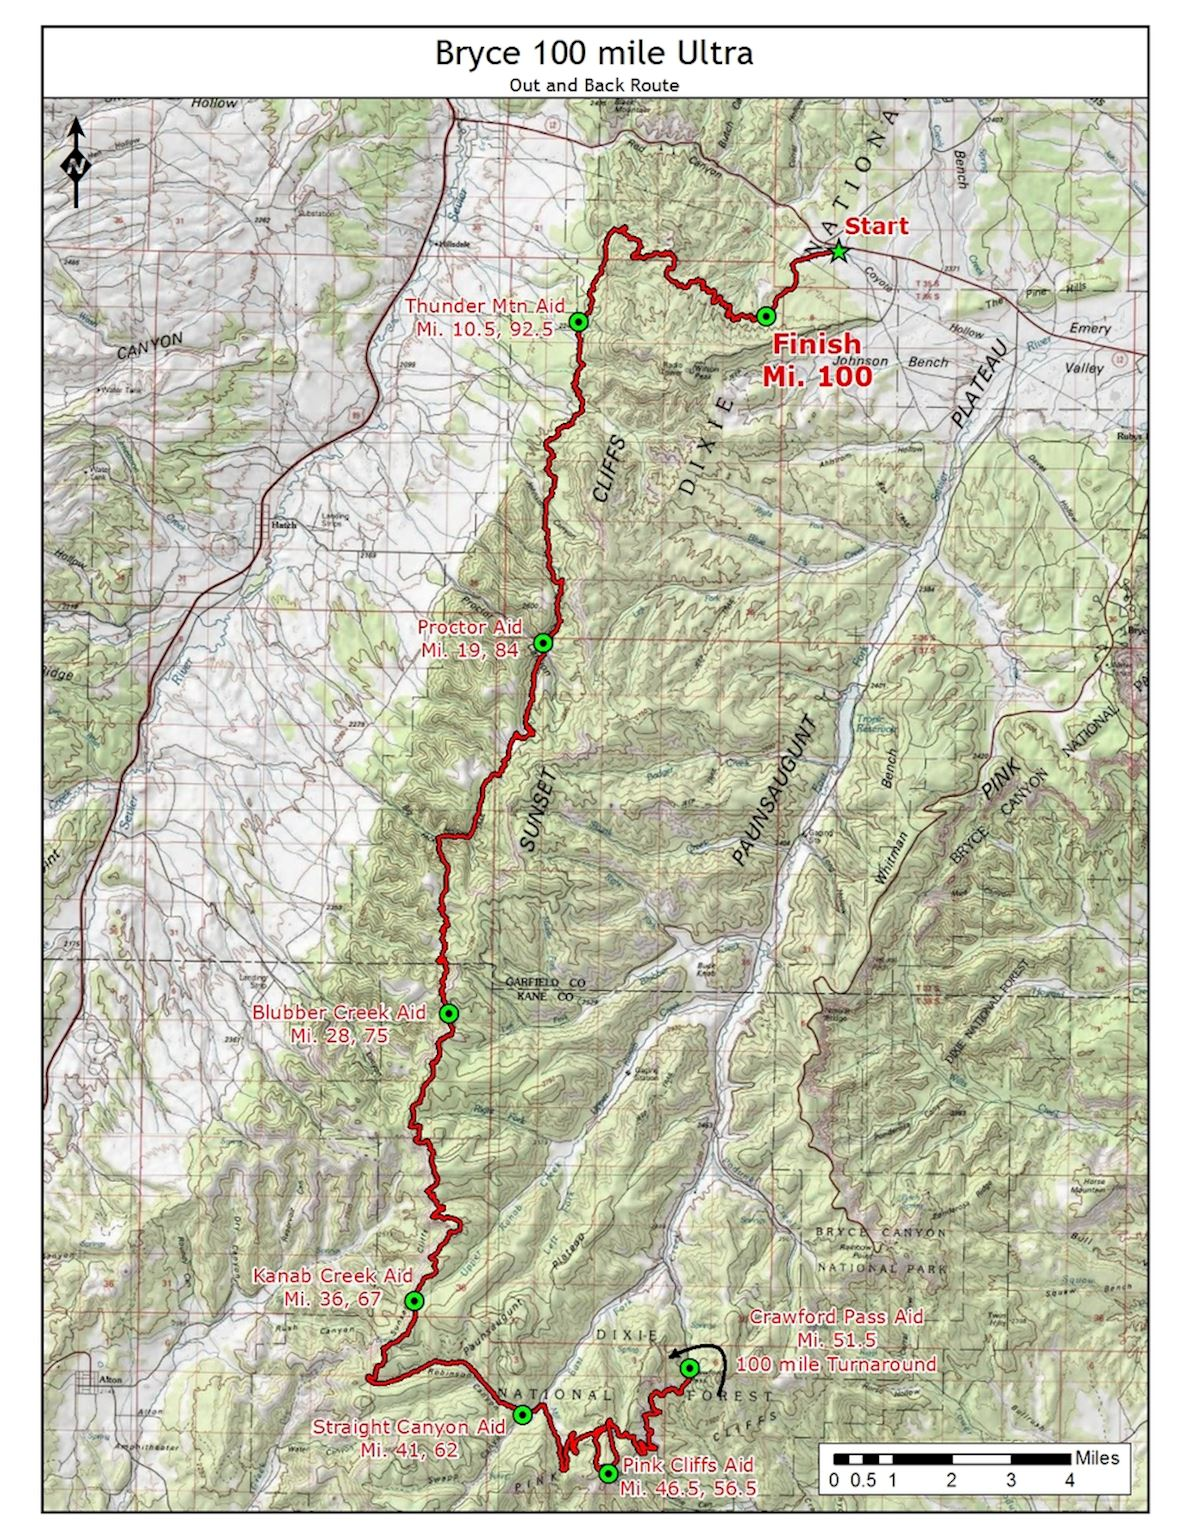 Bryce Canyon Ultra Marathons Route Map